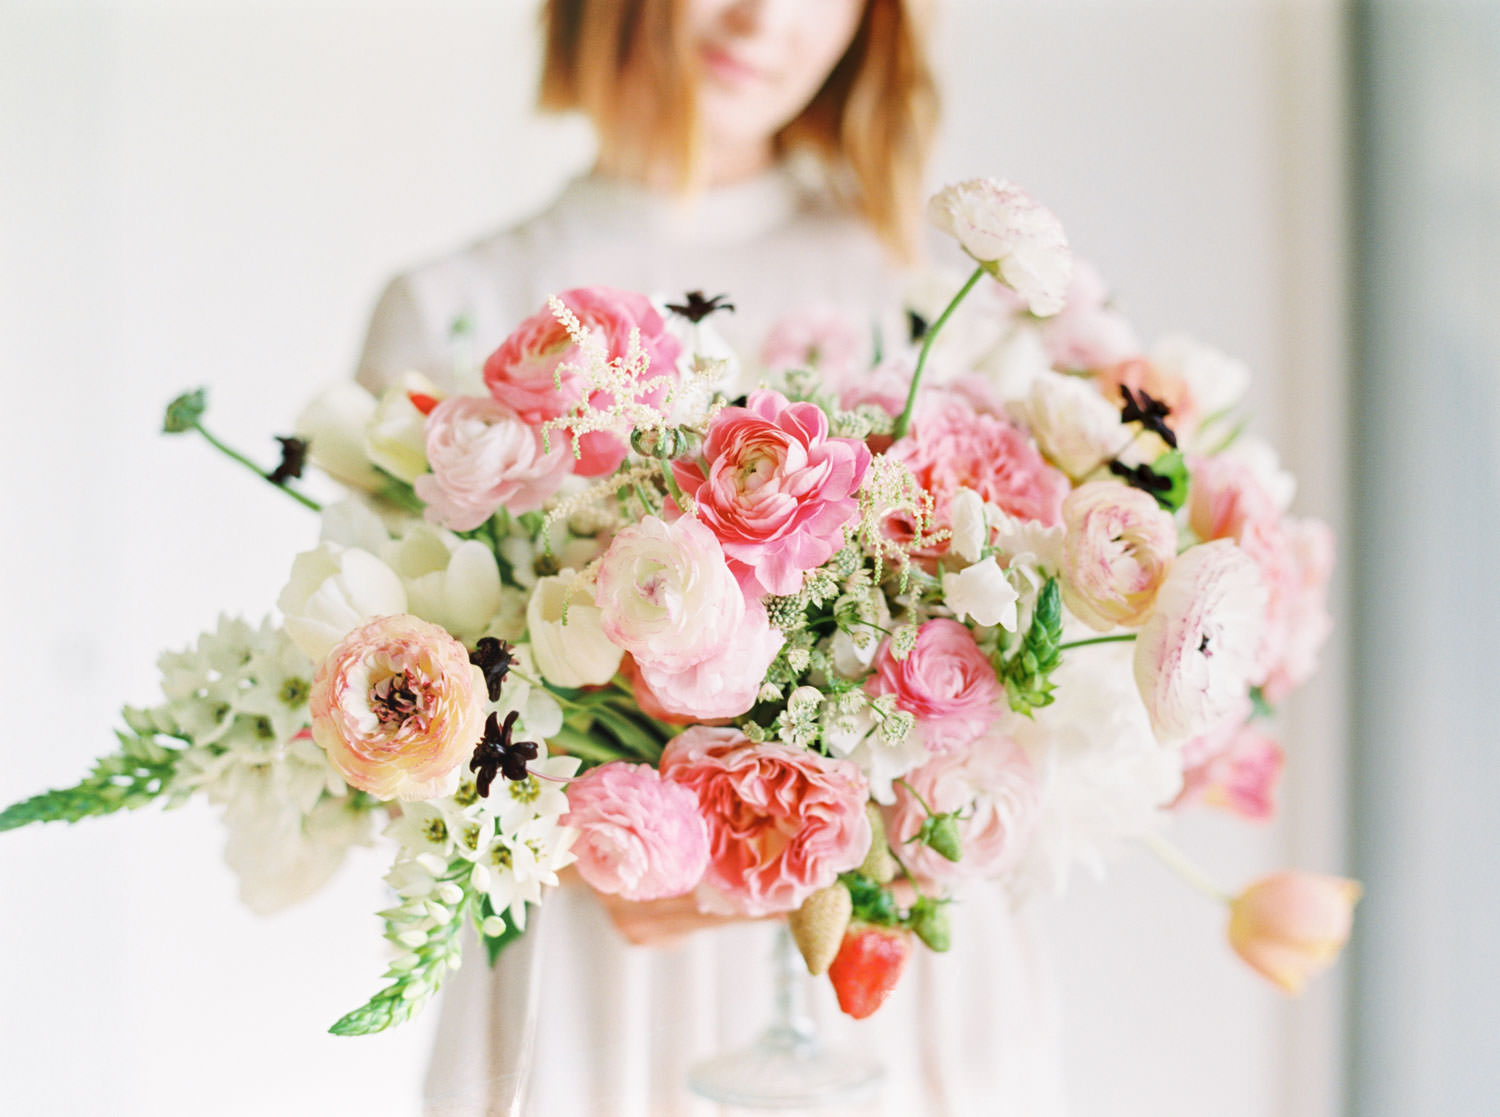 Bride holding Pink green white peach centerpiece on film, Romantic Colorful Floral Arrangements by Organic Flora, Cavin Elizabeth Photography